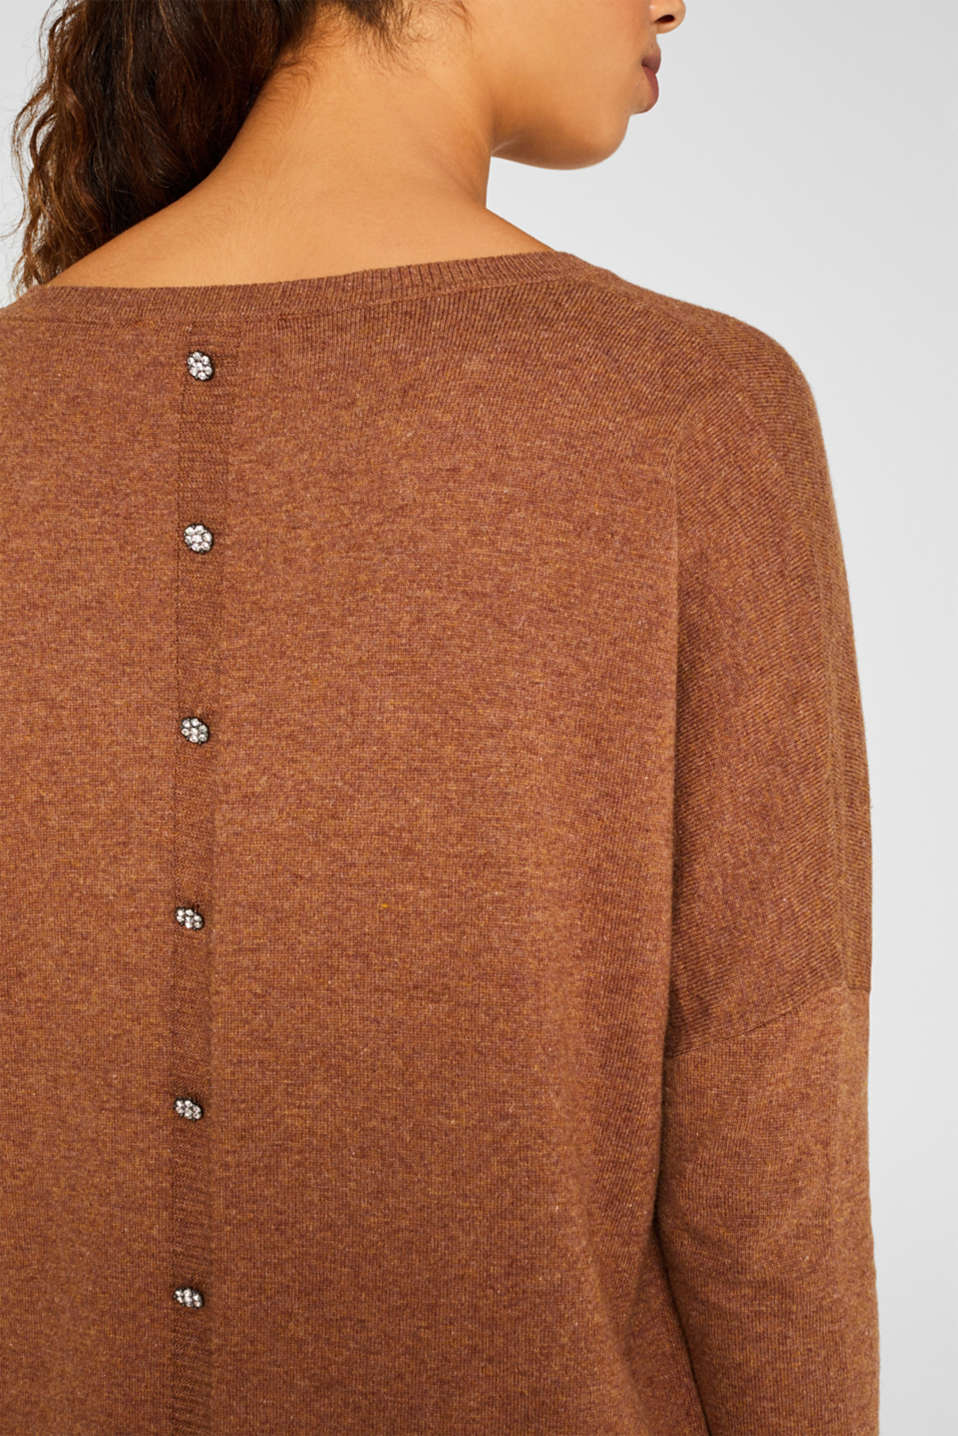 Sweaters, TOFFEE 5, detail image number 5